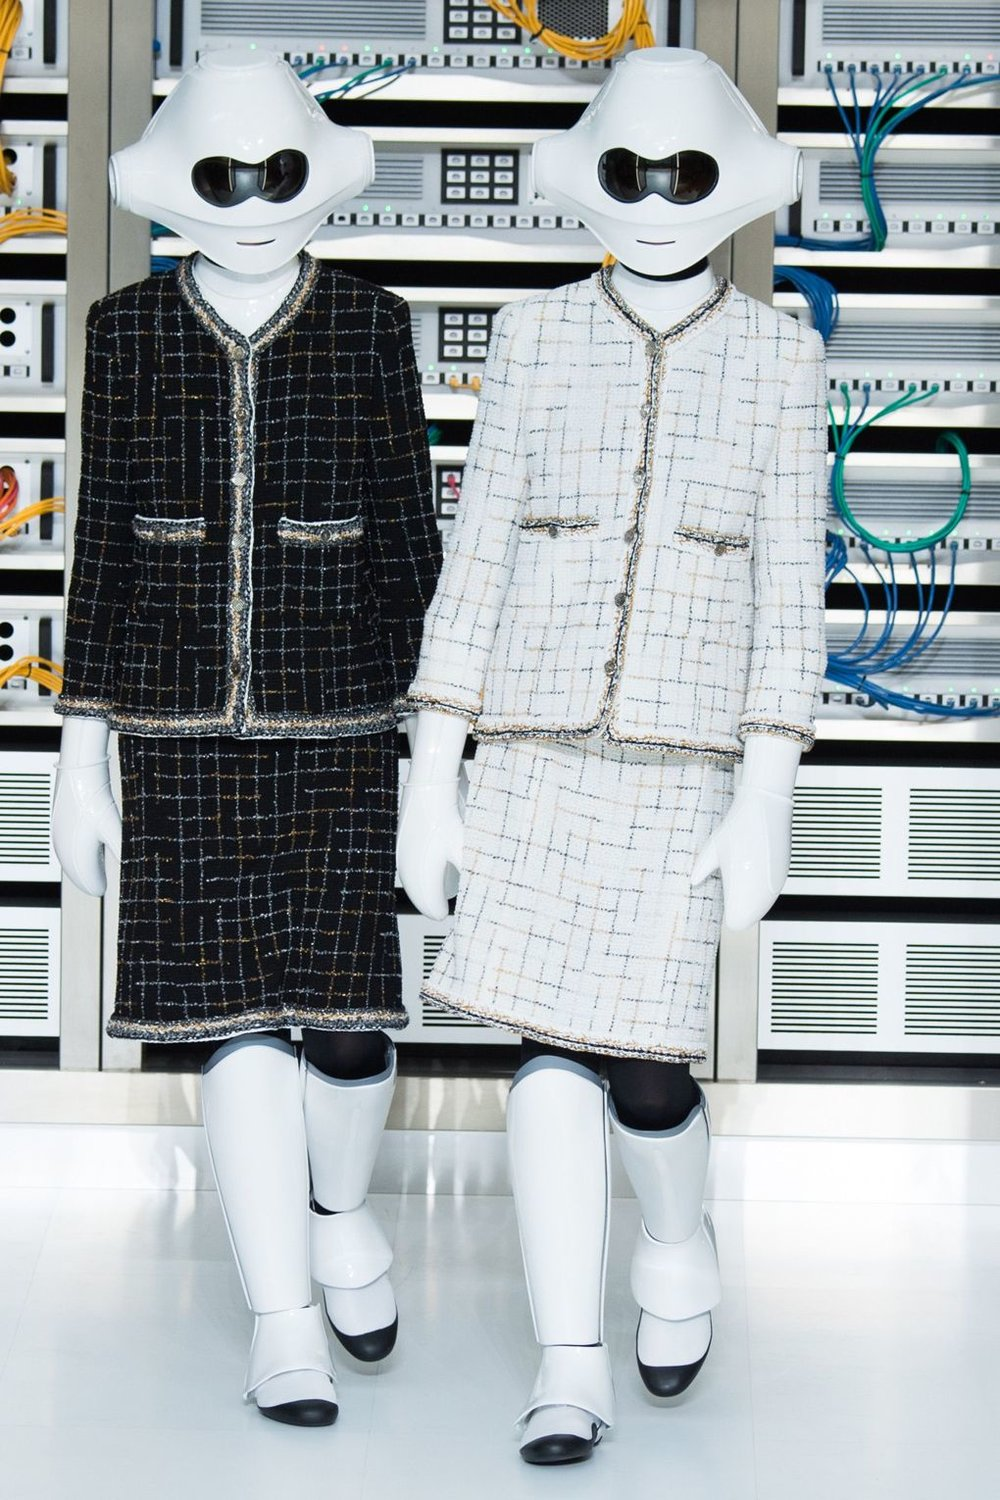 Chanel SS17 Karl Lagerfeld creates a youthful, 21st century collection. Twee meets the digital age. Credit: Indigital